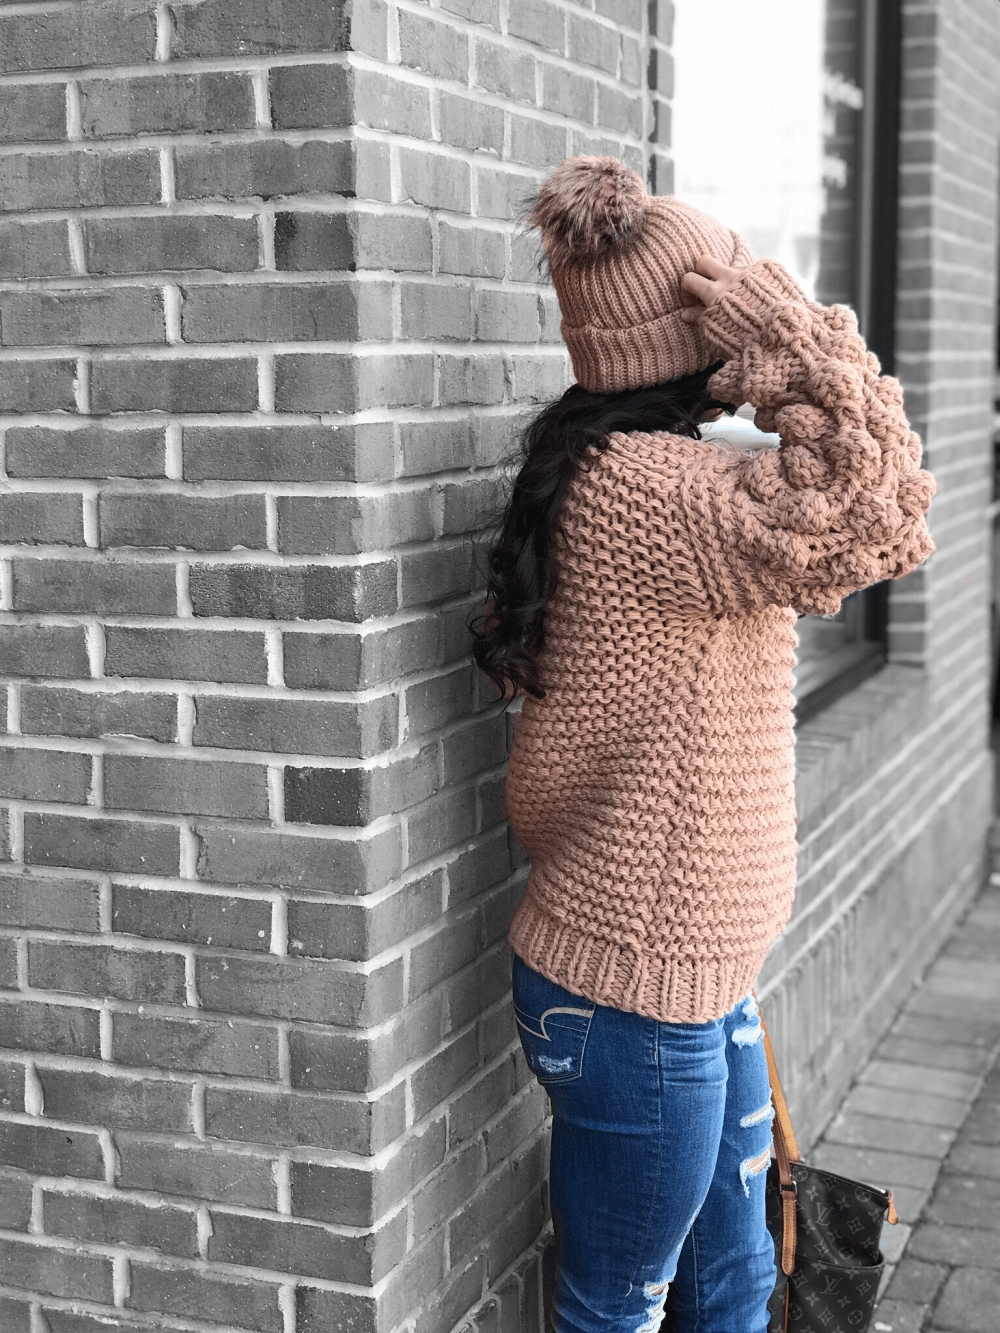 Pom Sweater - The Best Weekend Sales and the Cutest Pom-Pom Sweater by popular New Jersey style blogger Fit Mommy in Heels